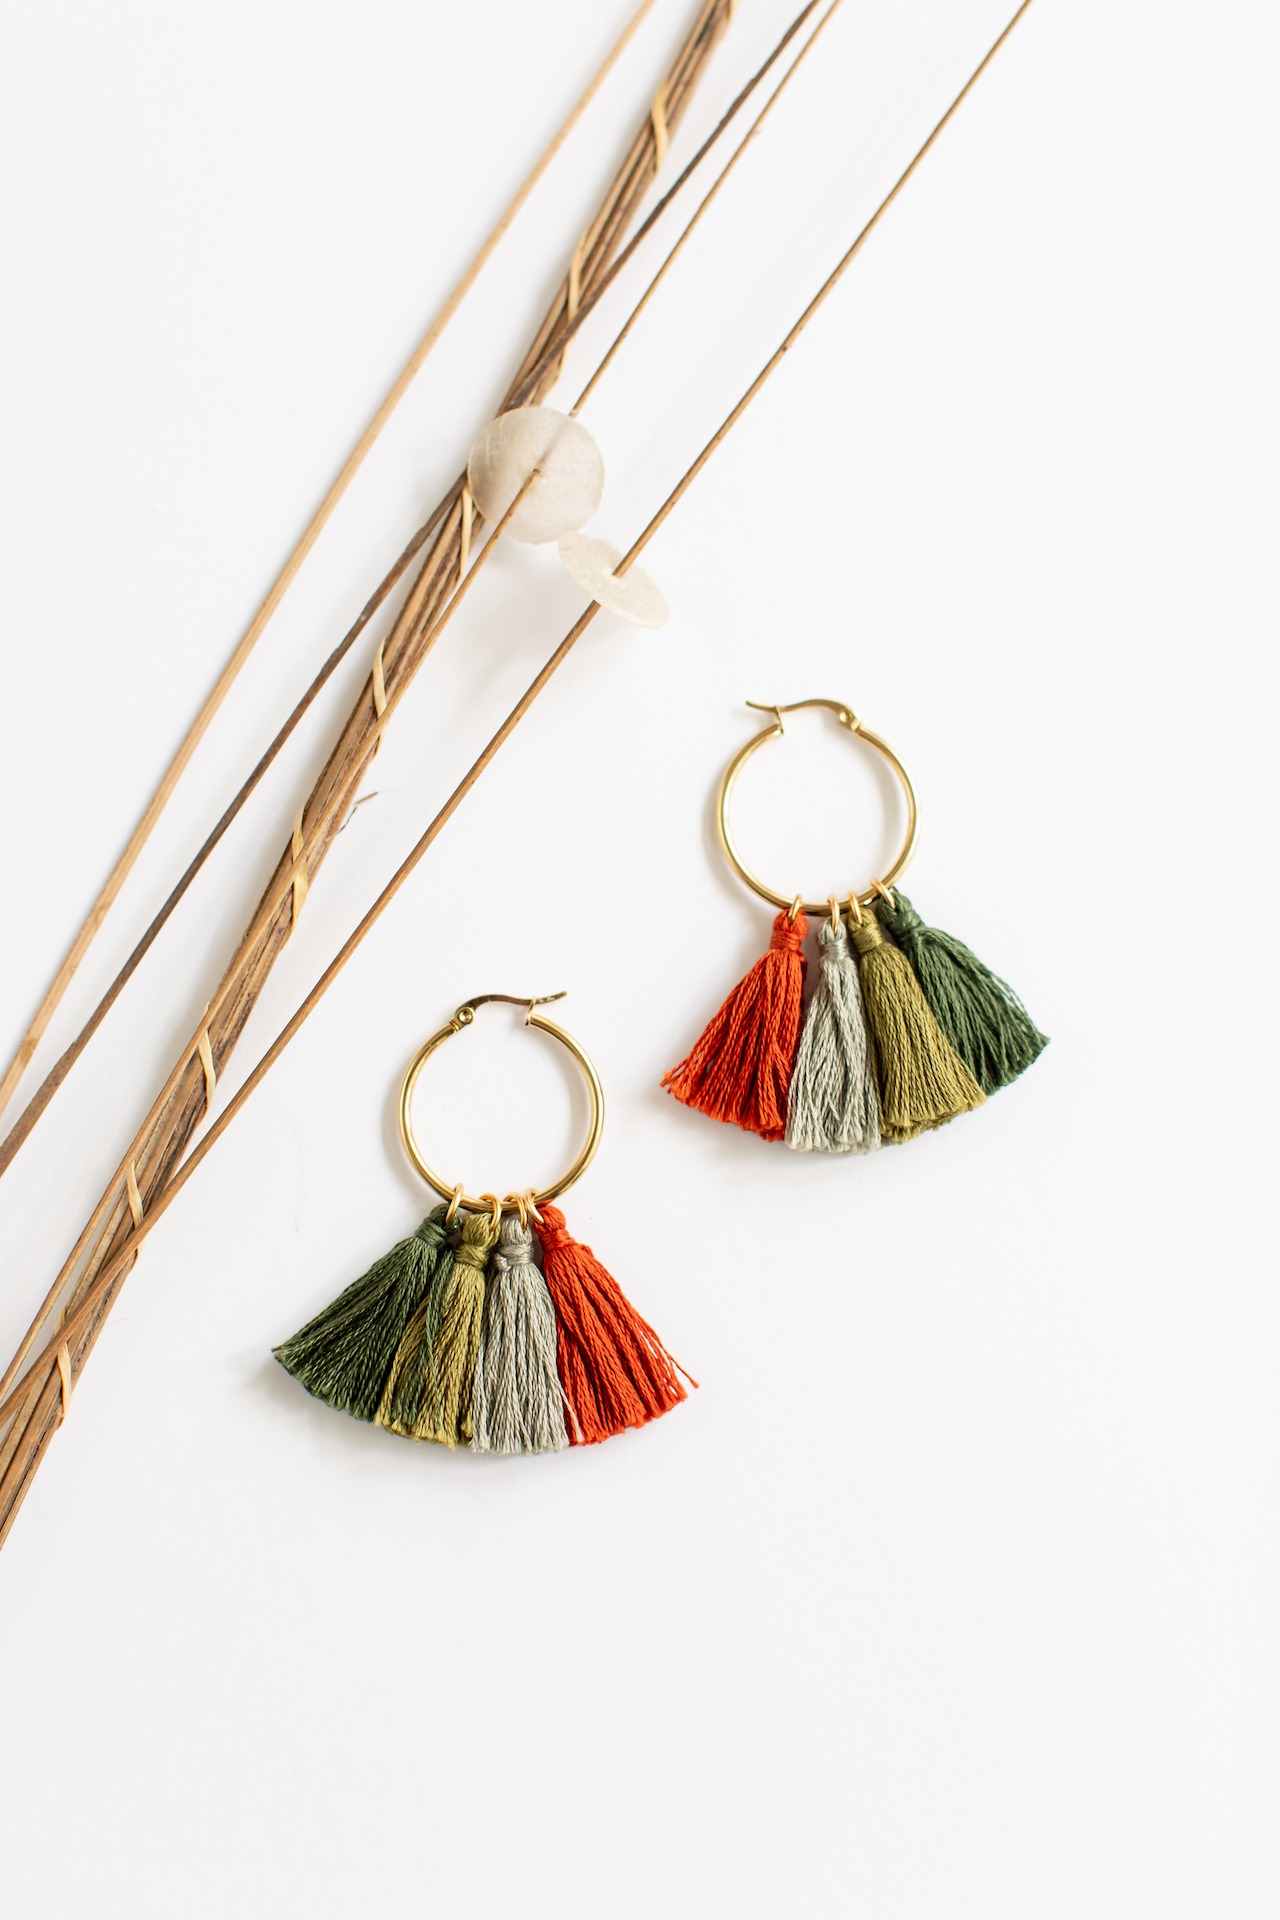 What is better than enjoying the beautiful colors of autumn? Taking the vibrant hues of fall with you and wearing them as an accessory! With these Festivus Tassel Earrings, you can sport an Autumn inspired pallet in fair trade and fashionable way. When yo